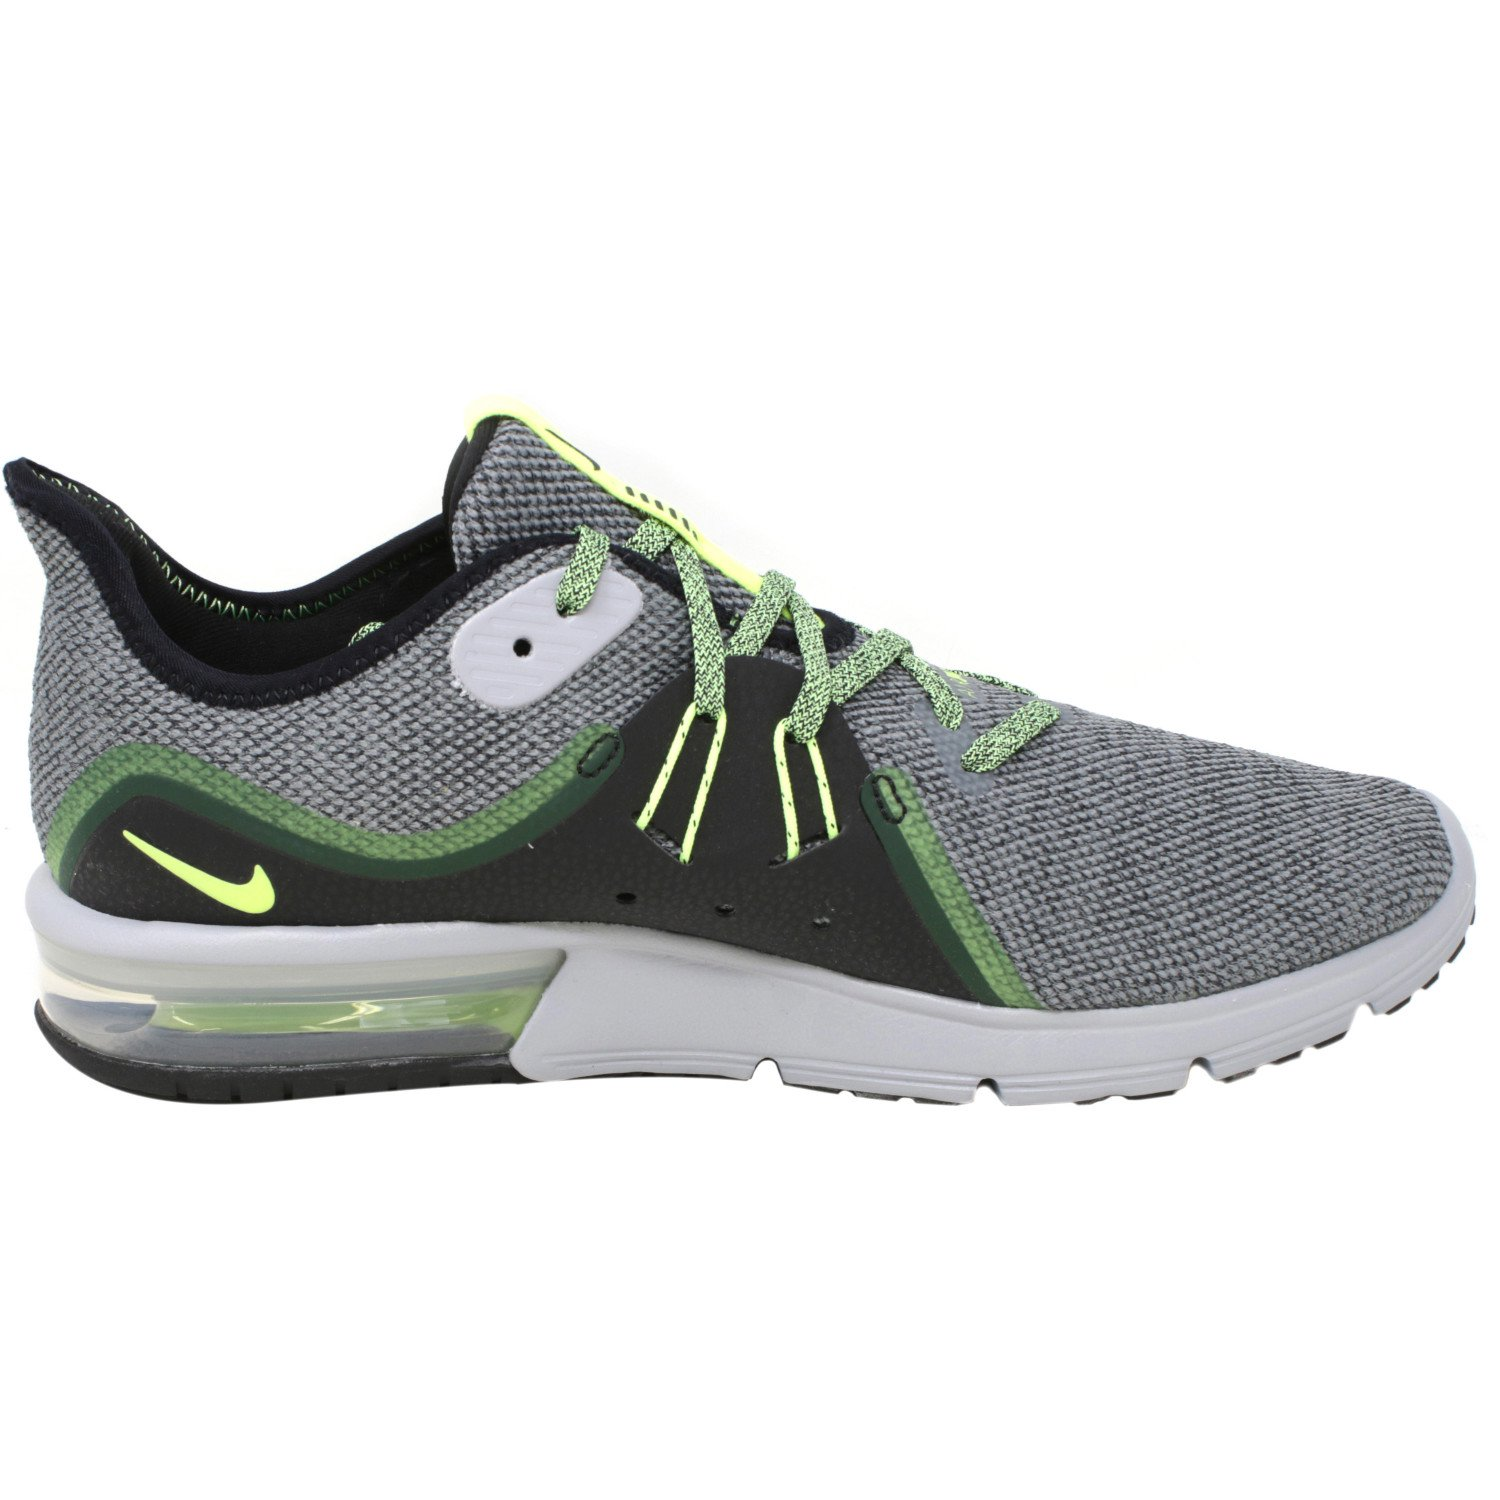 Nike Air Max Sequent 3 Grey/Green